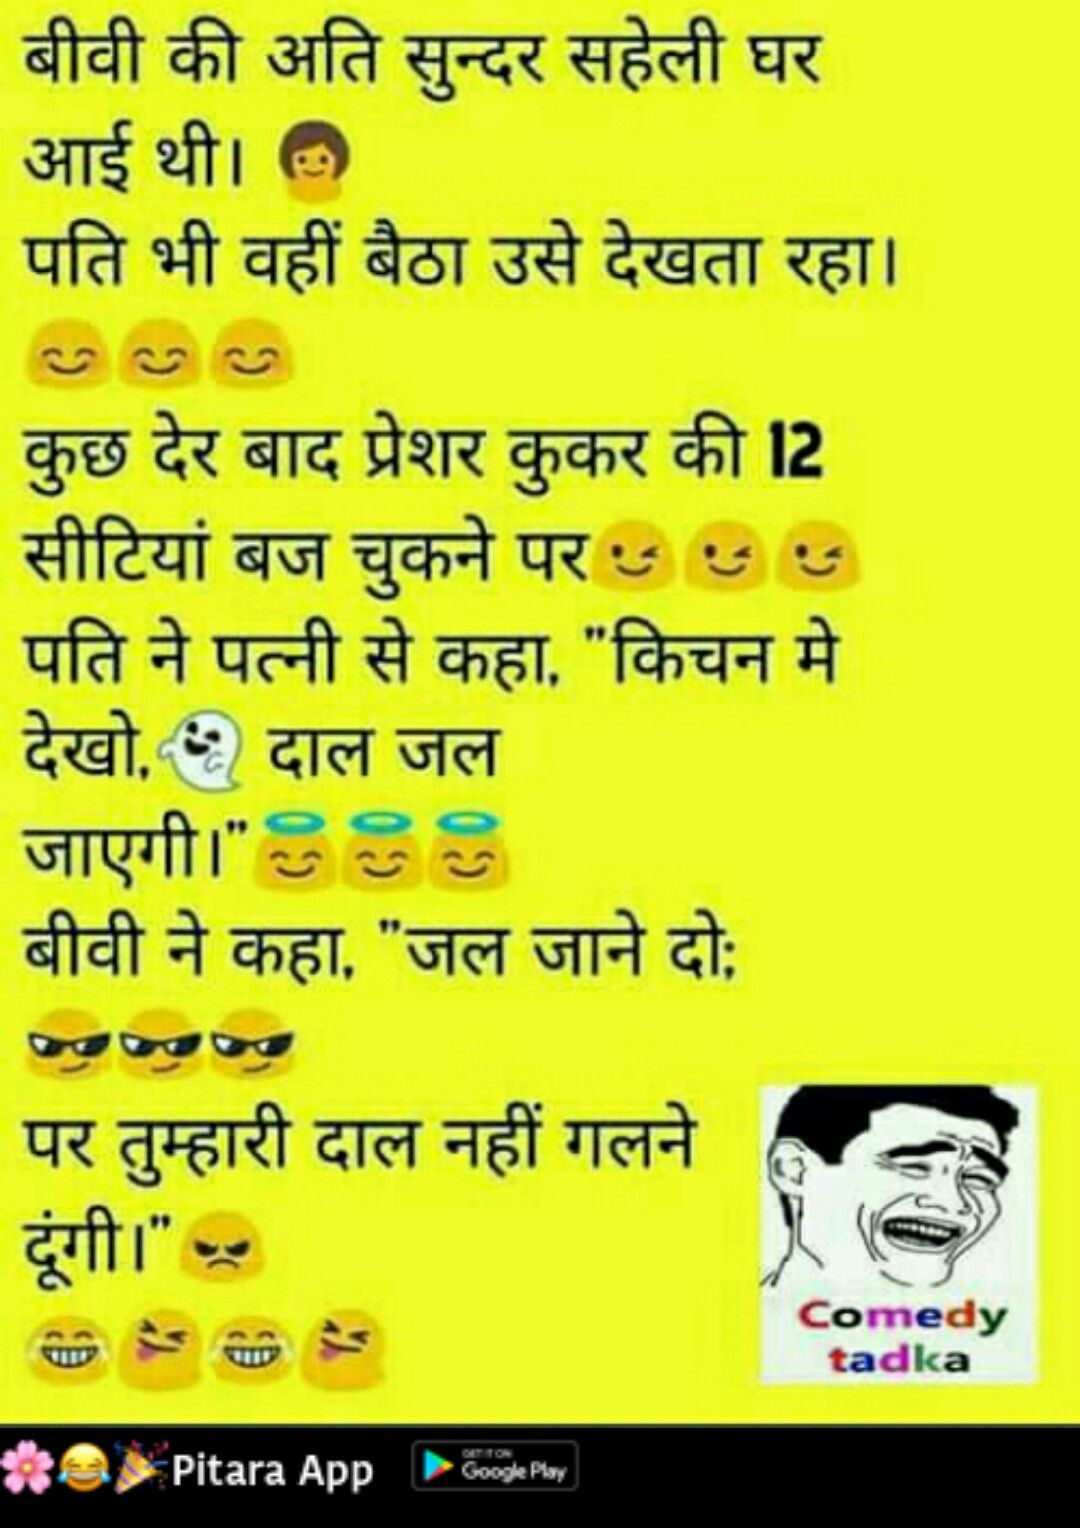 Follow me for more shreshthi sen Some funny jokes